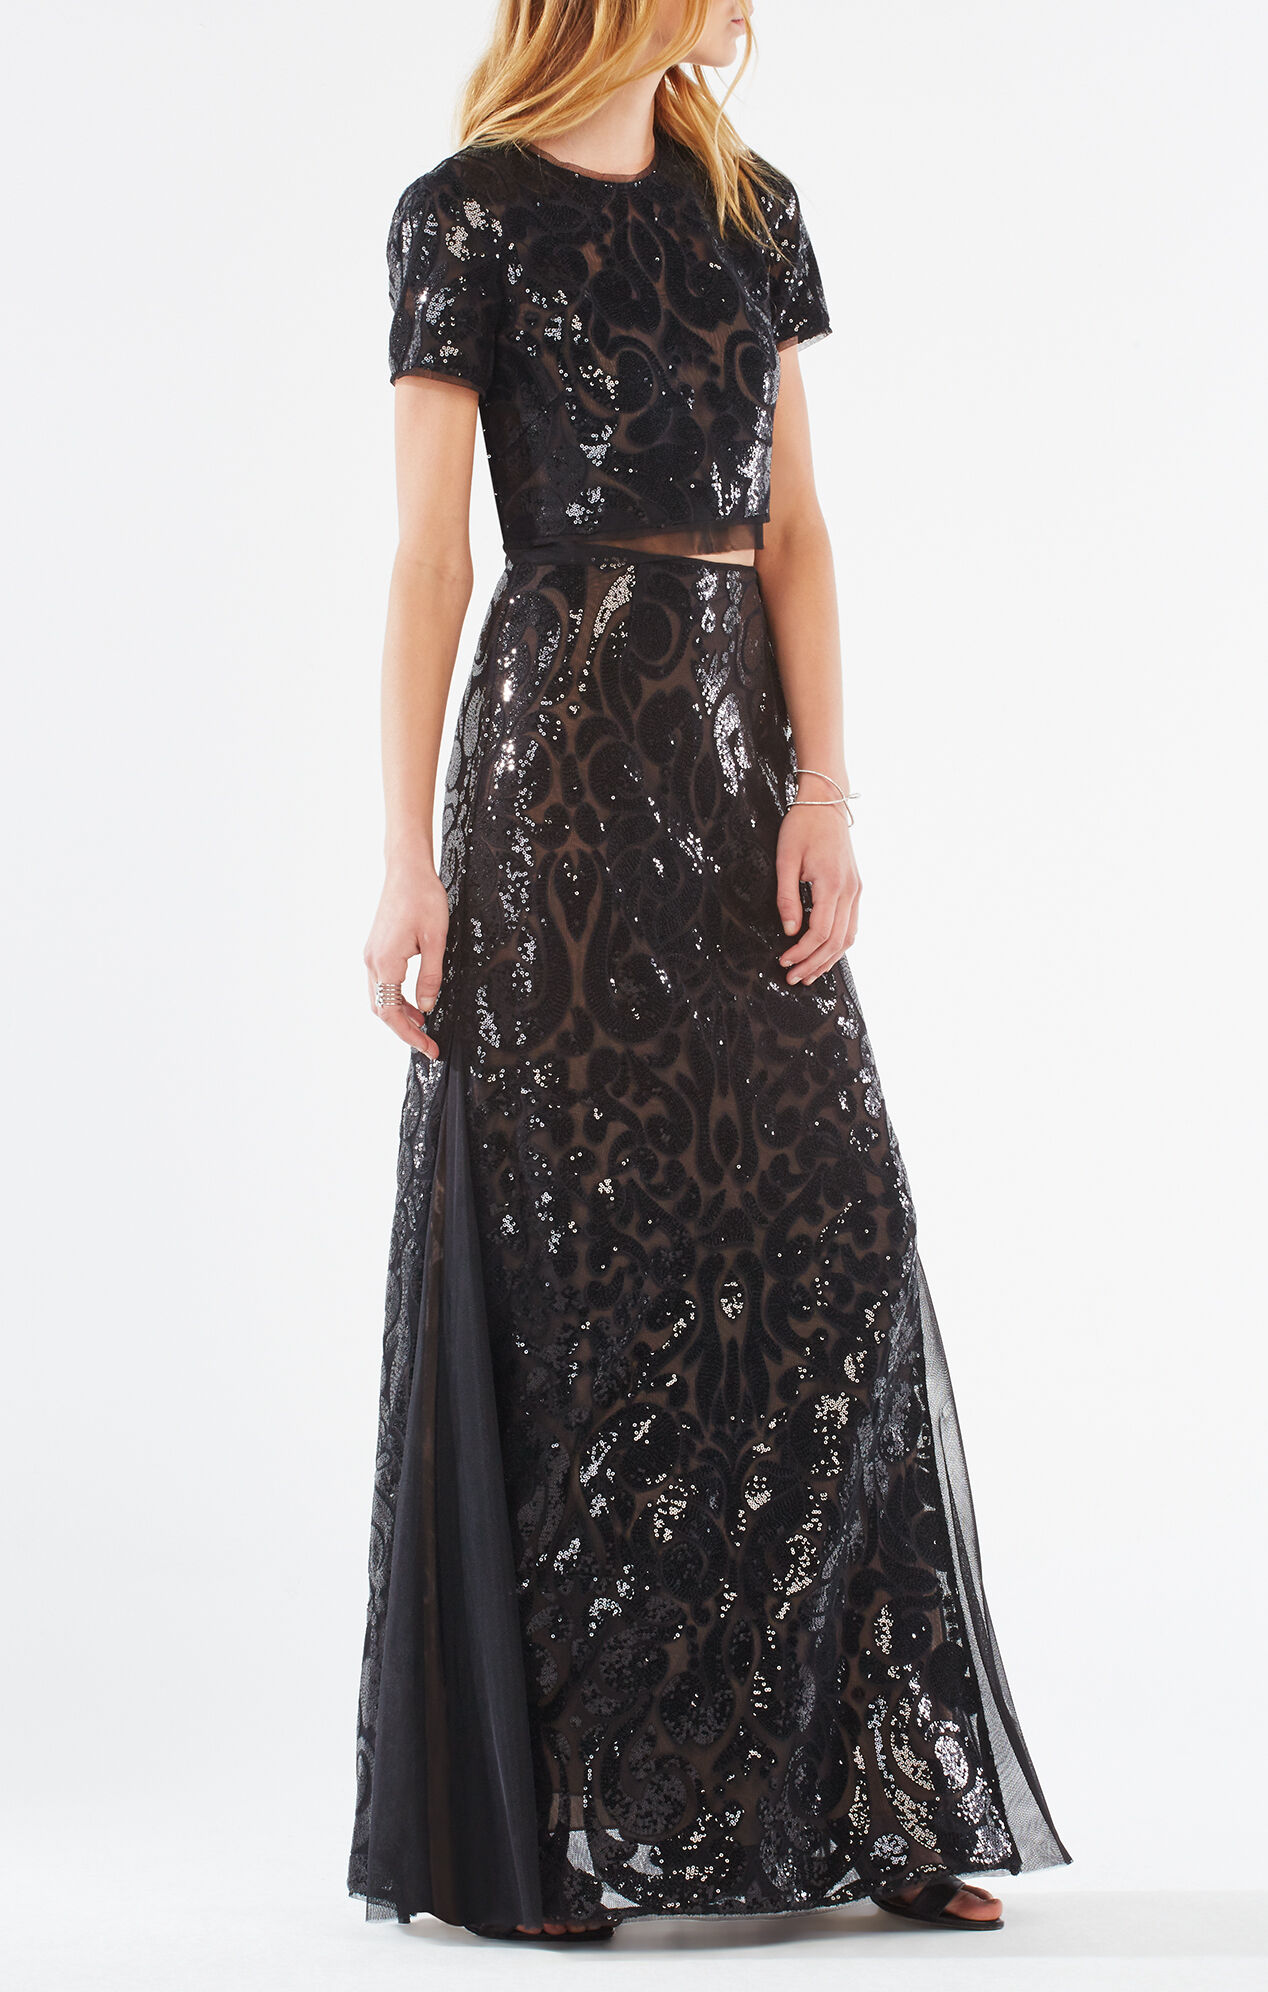 This short black party dress daringly fuses the sparkle of sequins with the femininity of floral embroidery. For the glam girl with an edge, this strapless dress has multi-color floral embroidery swirling across the glittering black sequins that shine from the sweetheart neckline to /5(41).